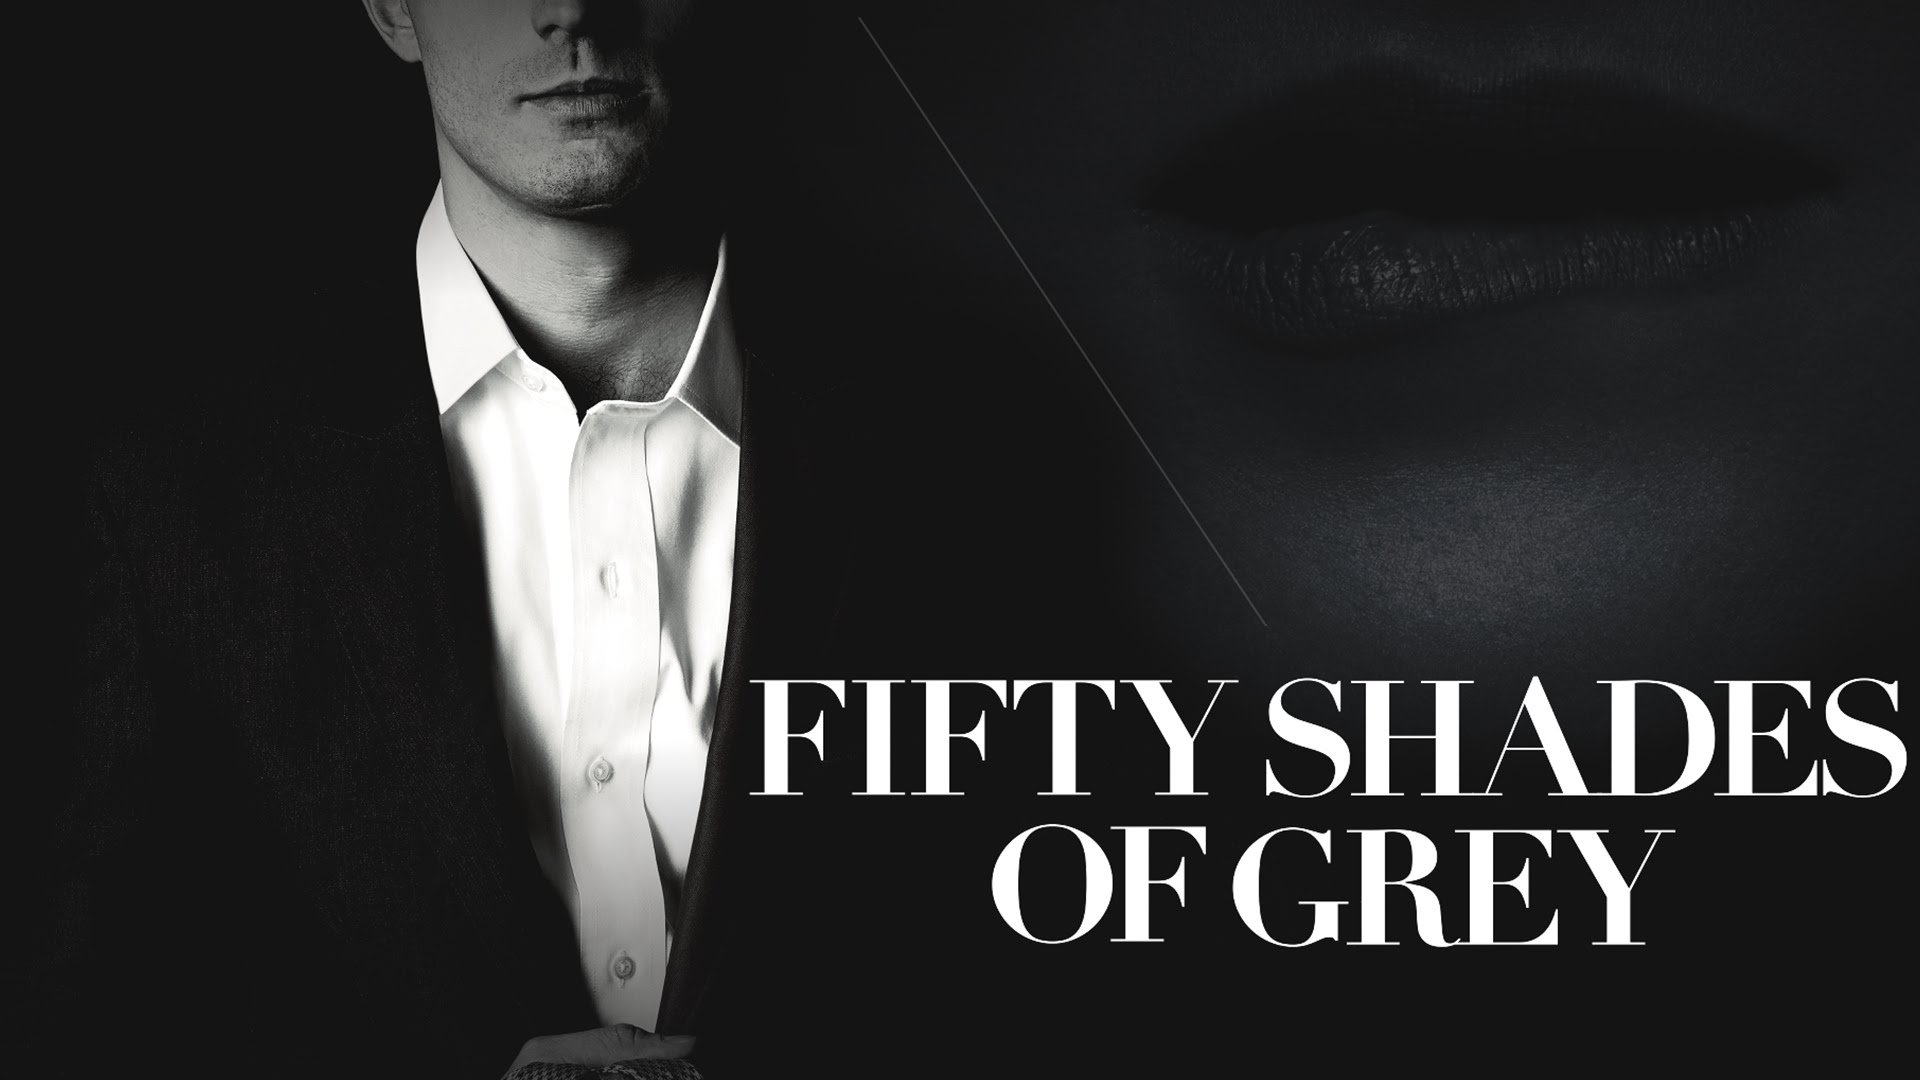 Fifty shades of grey wallpaper 48753 1920x1080 px for The fifty shades of grey